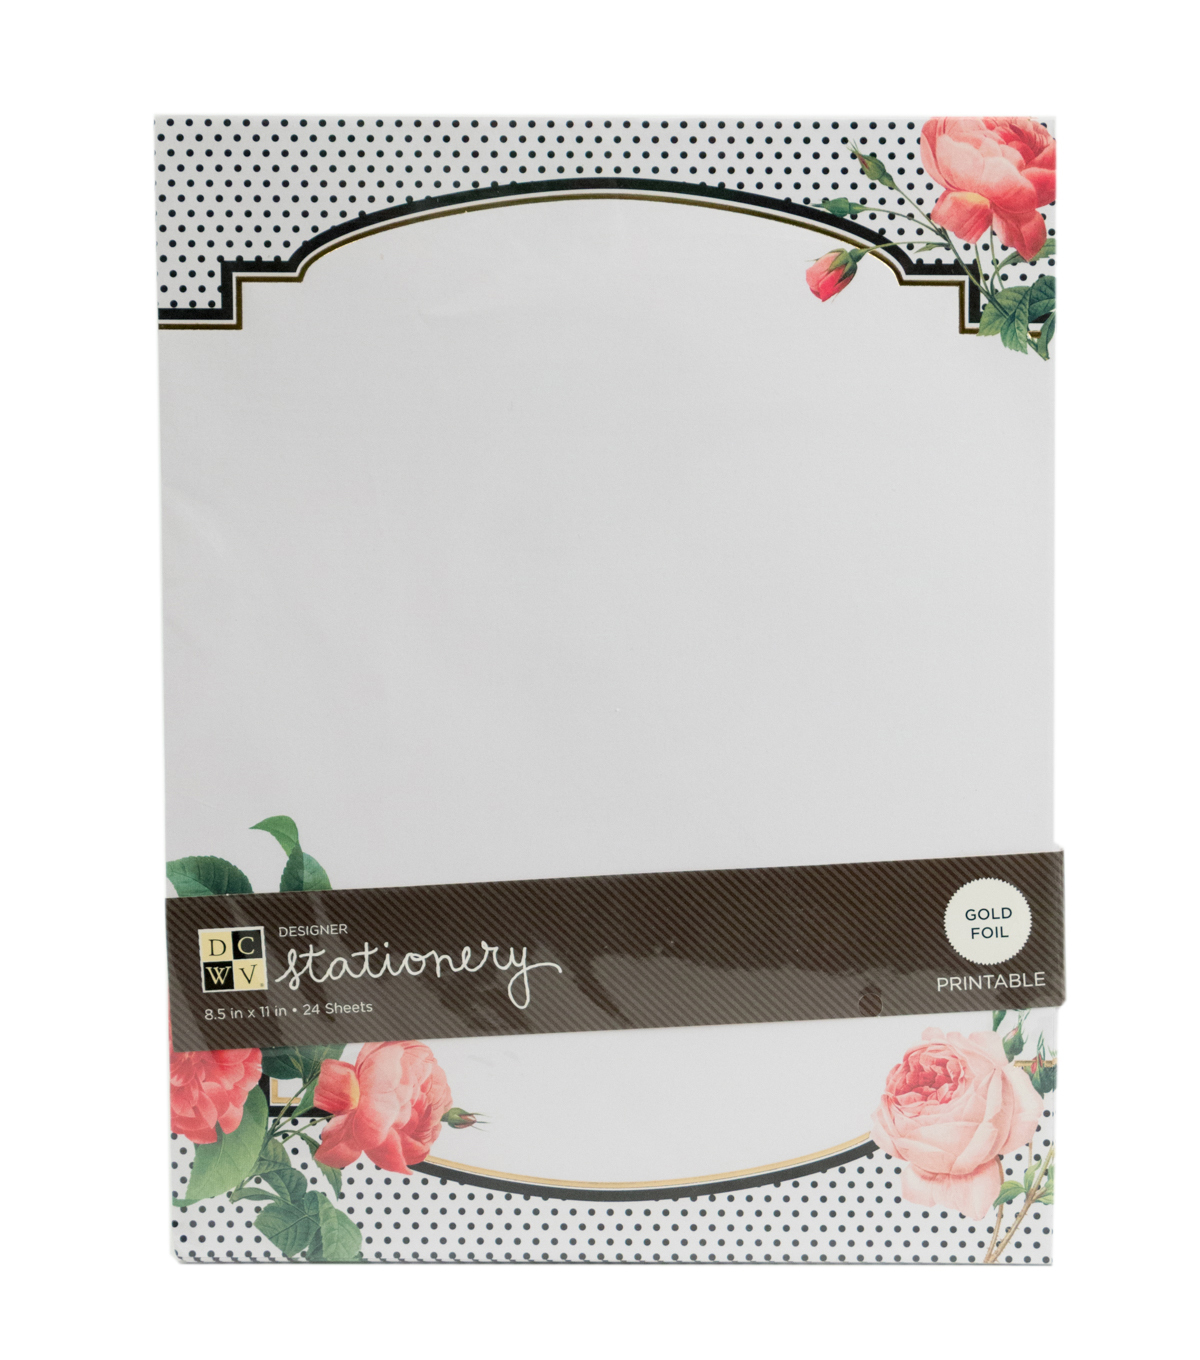 DCWV 8-1/2\u0022x11\u0022 Designer Printable Stationery: Roses and dots